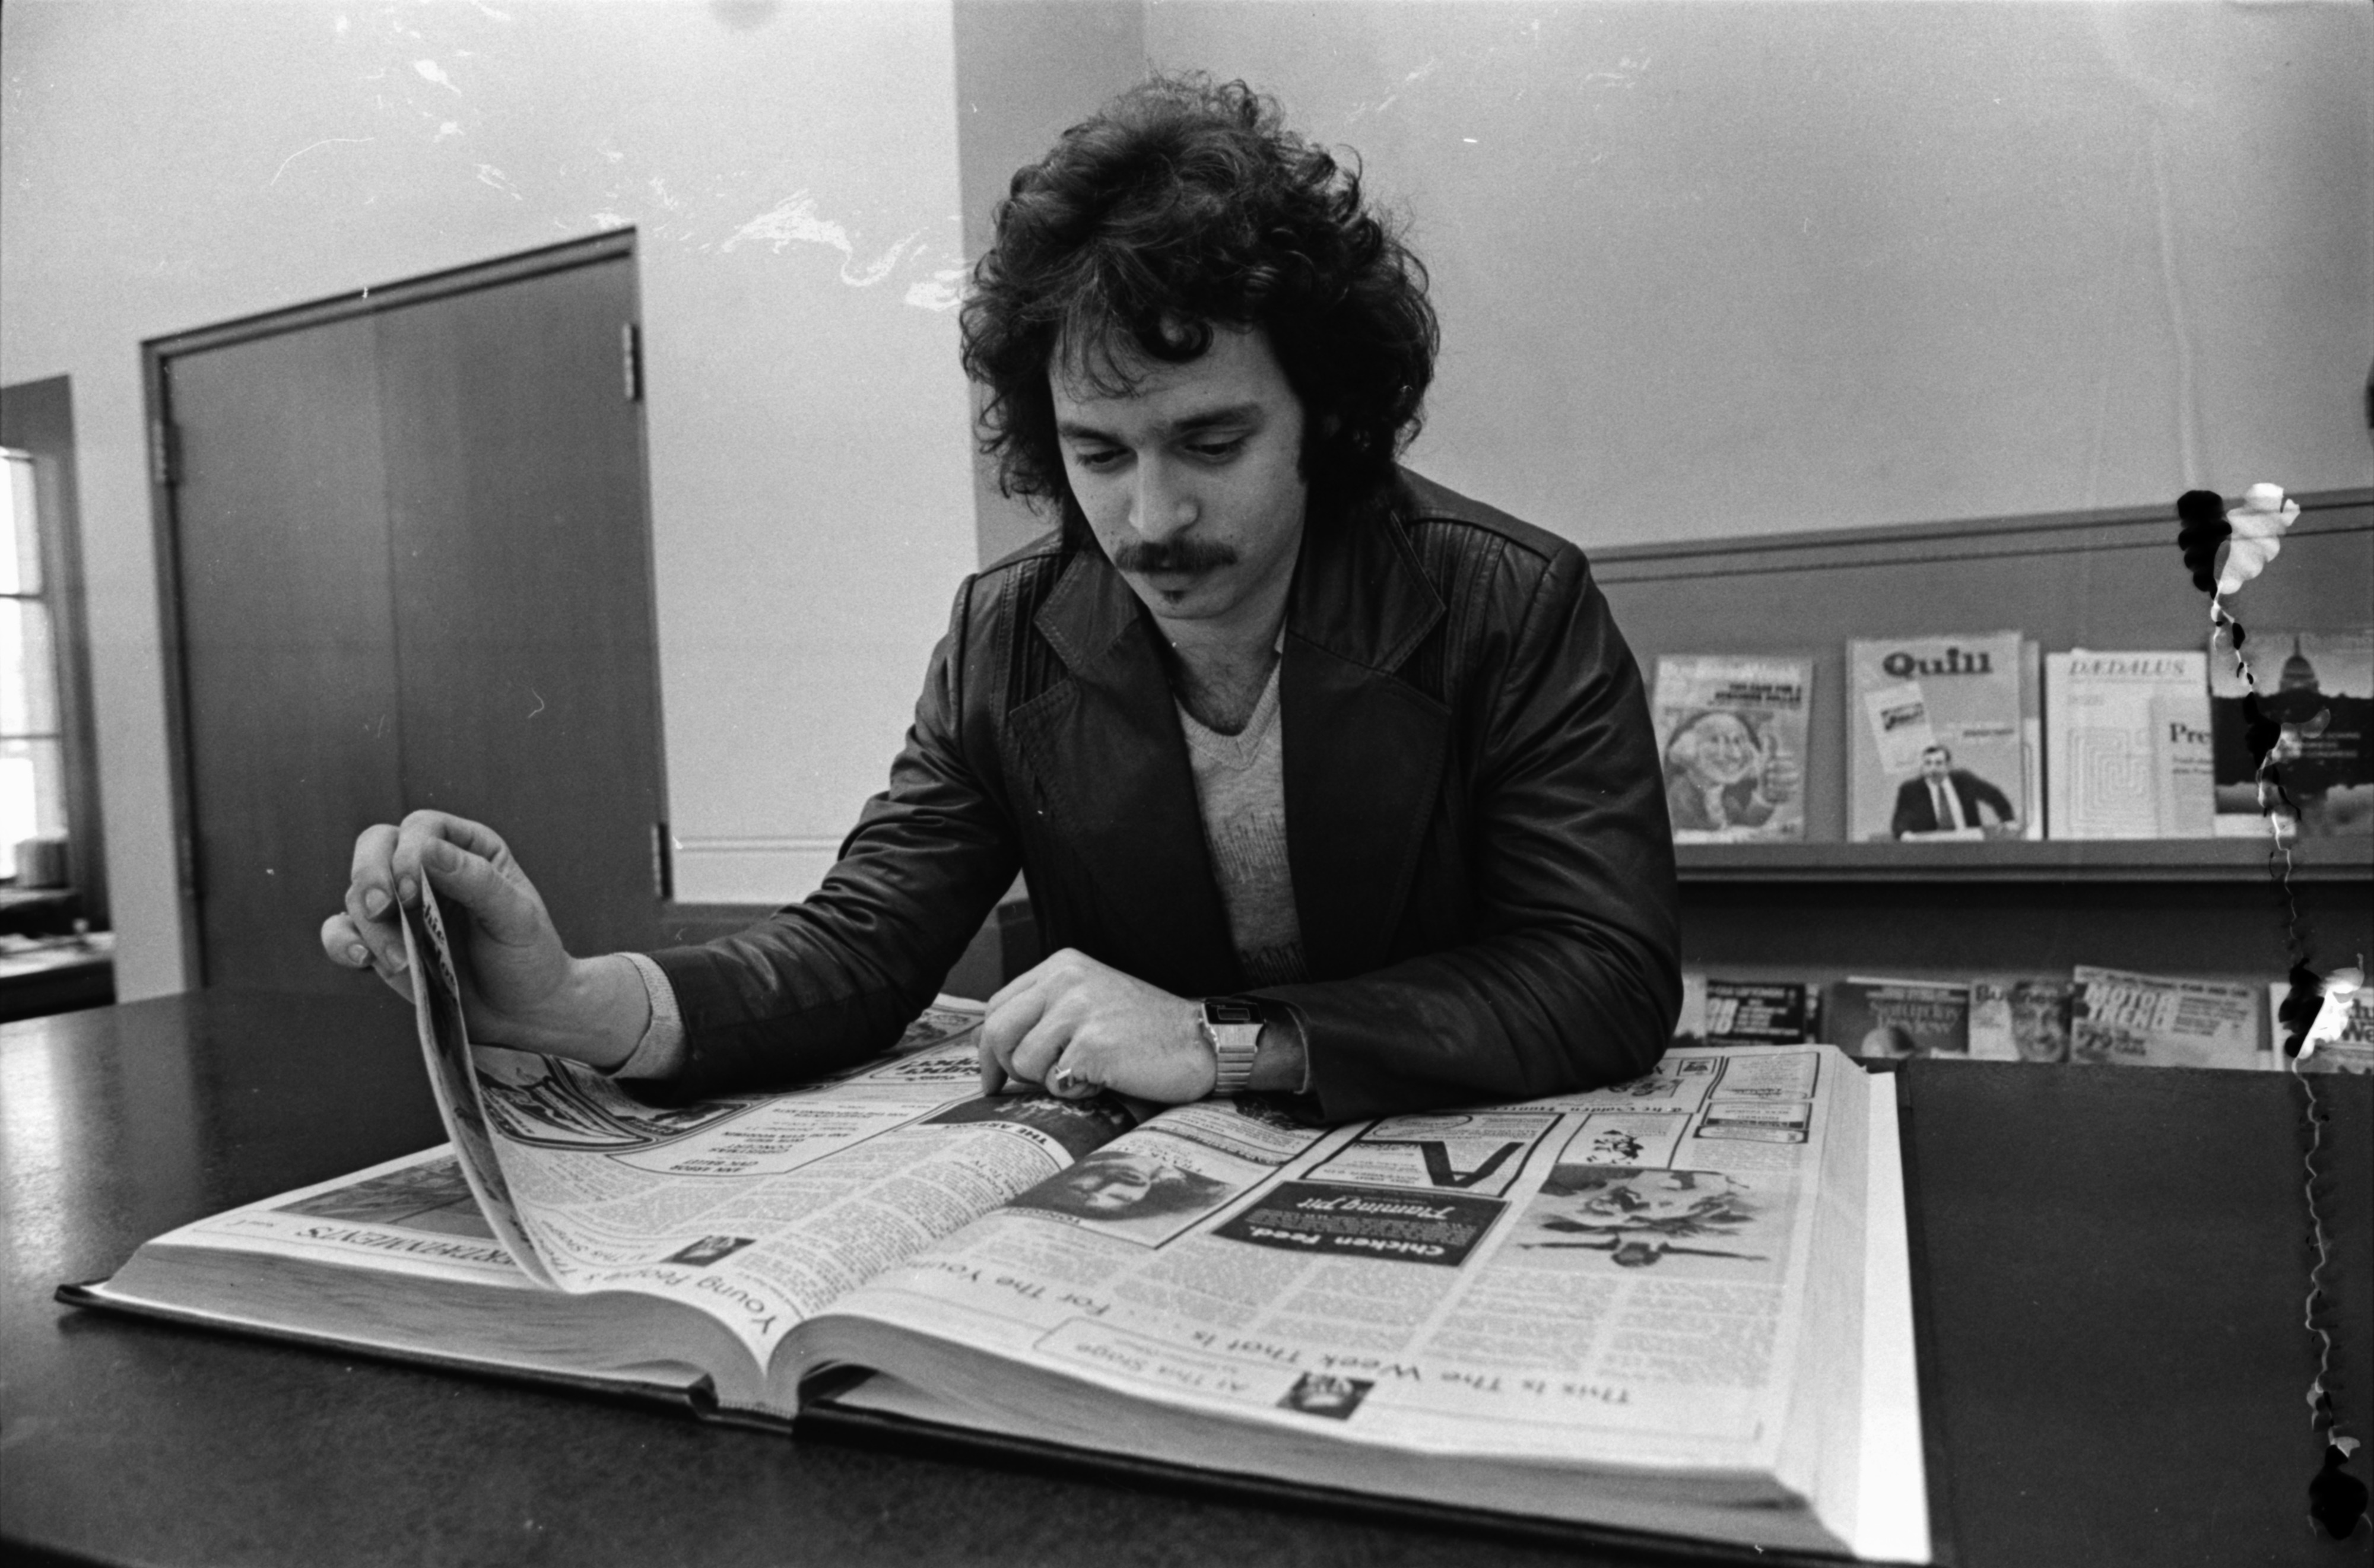 Wayne Kramer, formerly of the MC-5, looks through past editions of the Ann Arbor News, December 1978 image